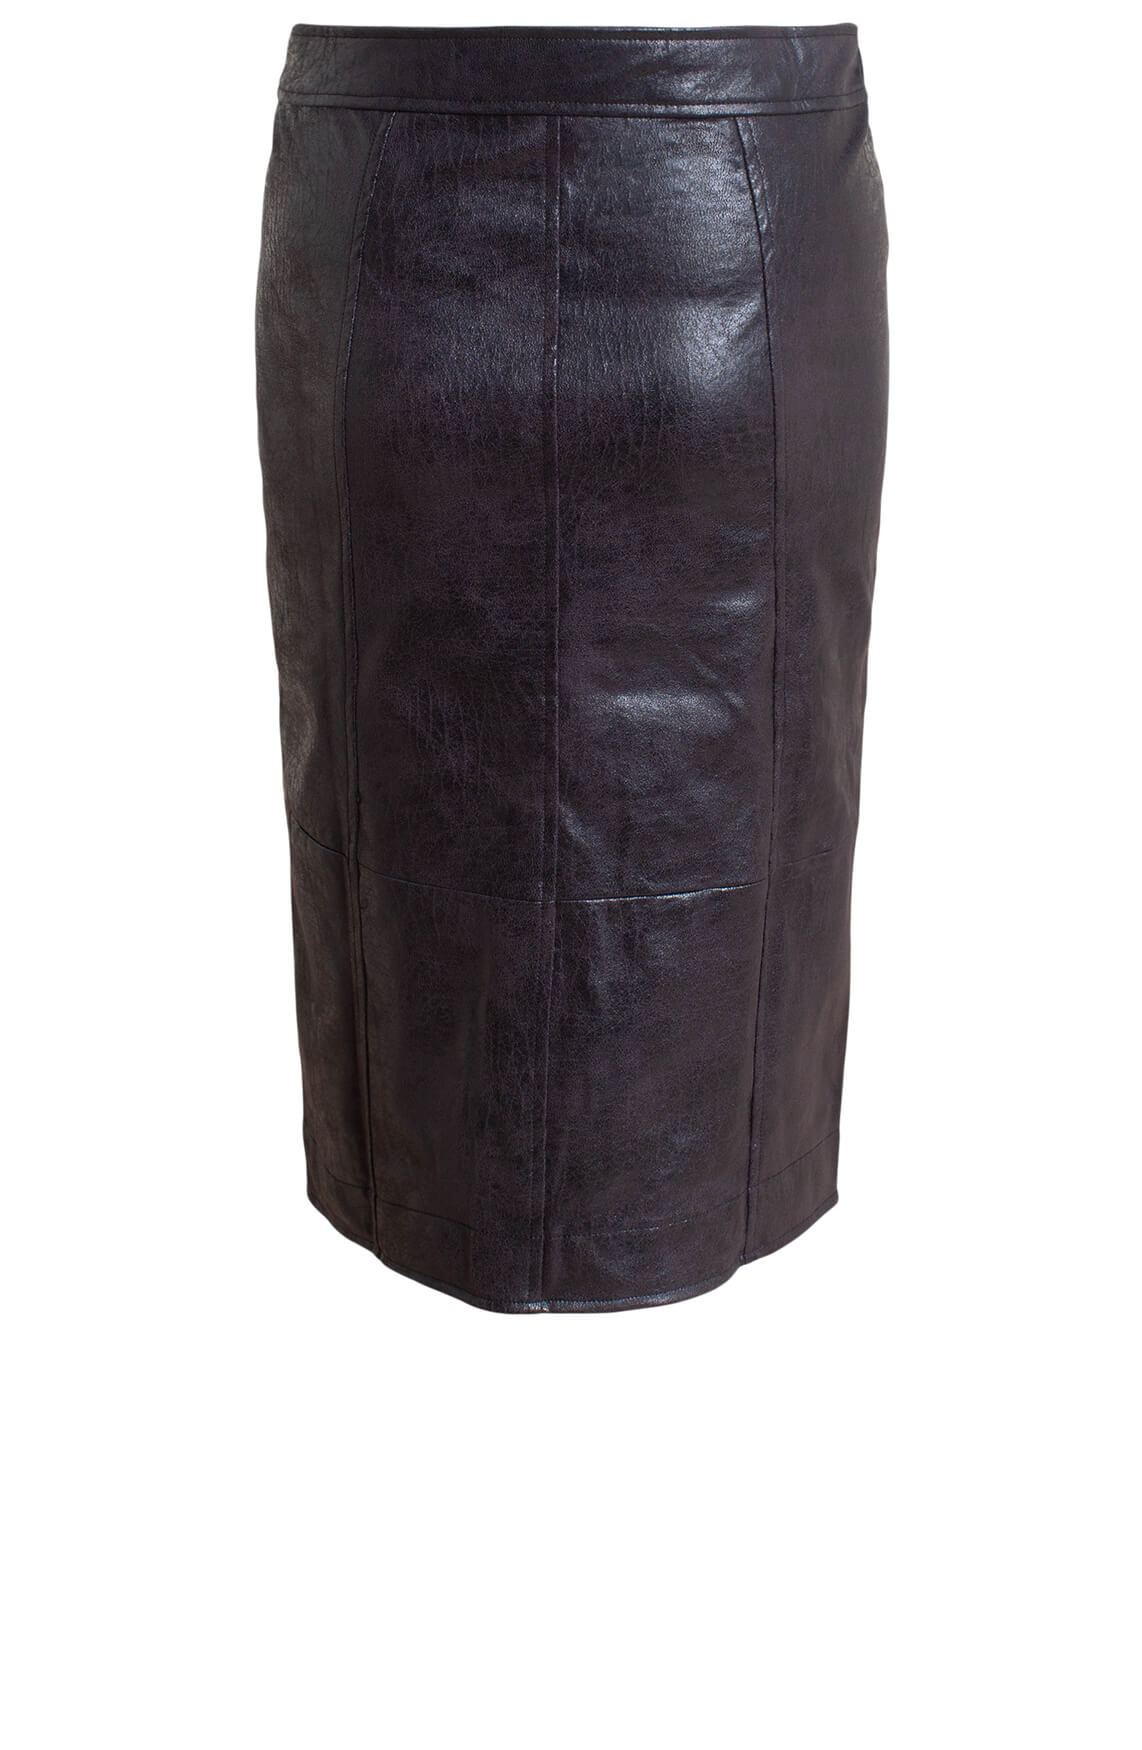 Anna Dames Fake leather rok zwart